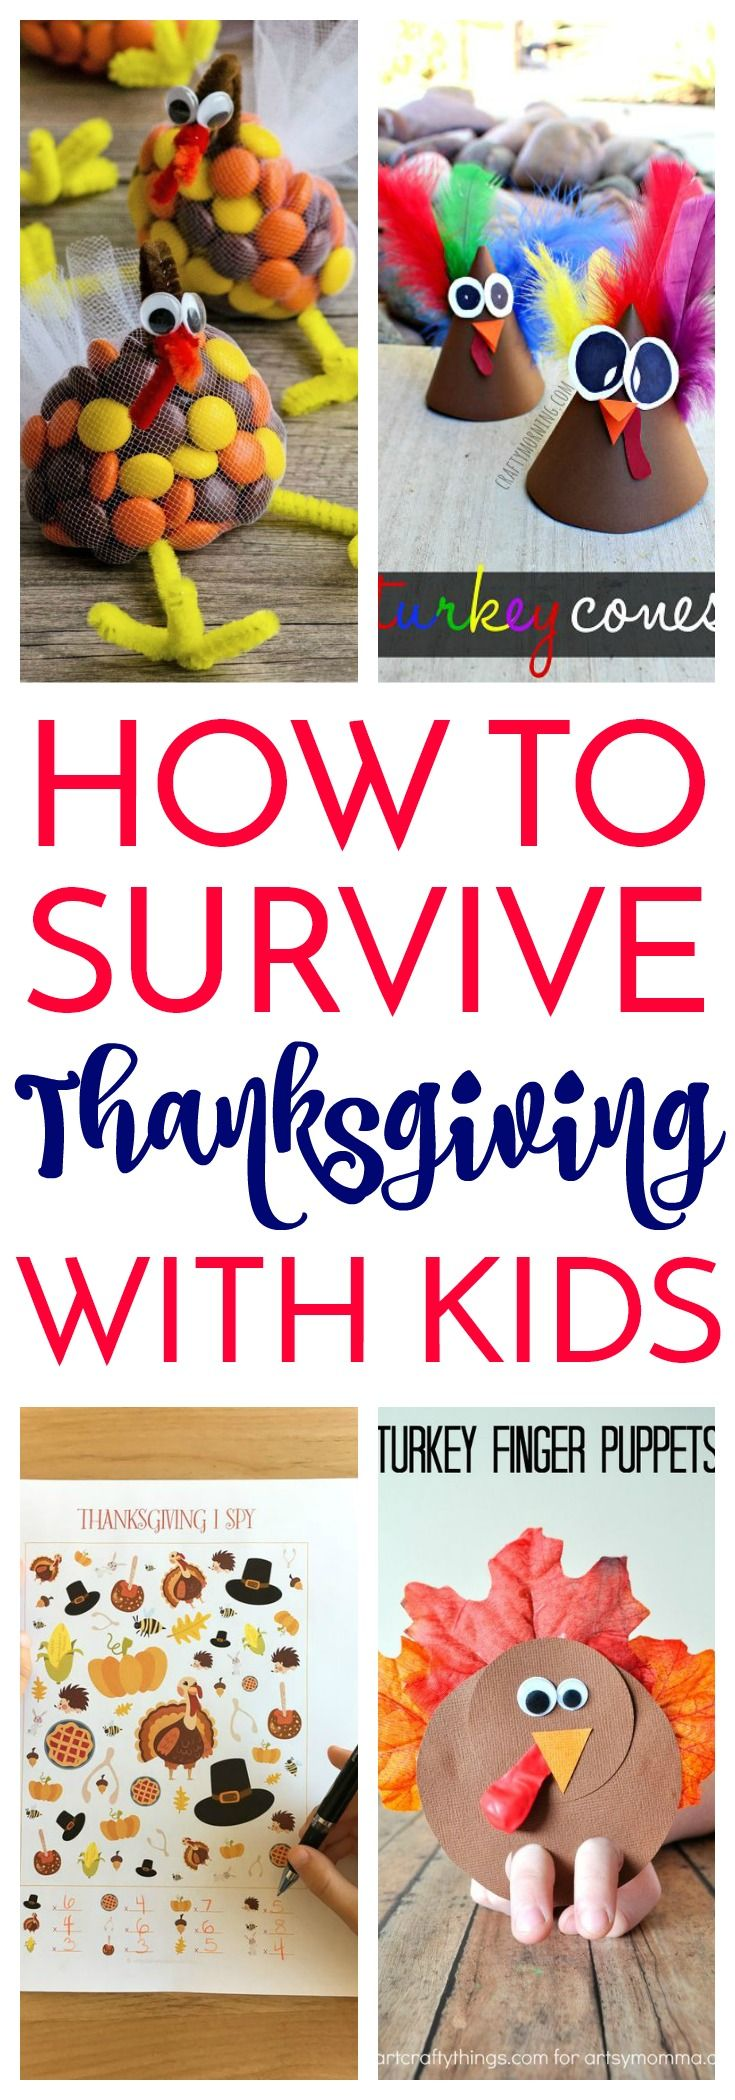 10 Kids Crafts for Thanksgiving | Diy projects for kids ...